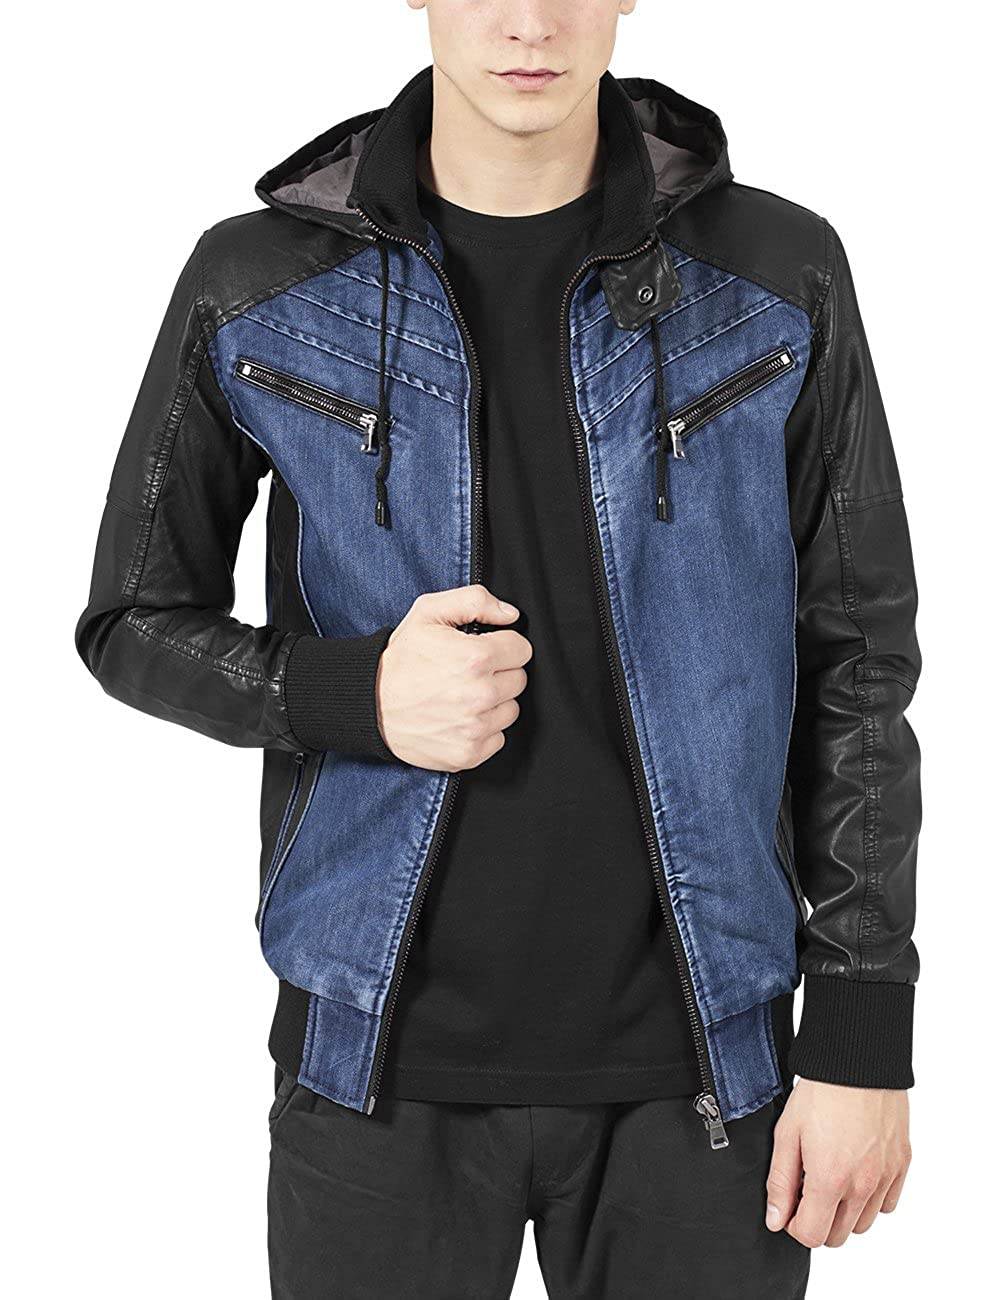 TALLA XL. Urban Classics Hooded Denim Leather Jacket Chaqueta para Hombre